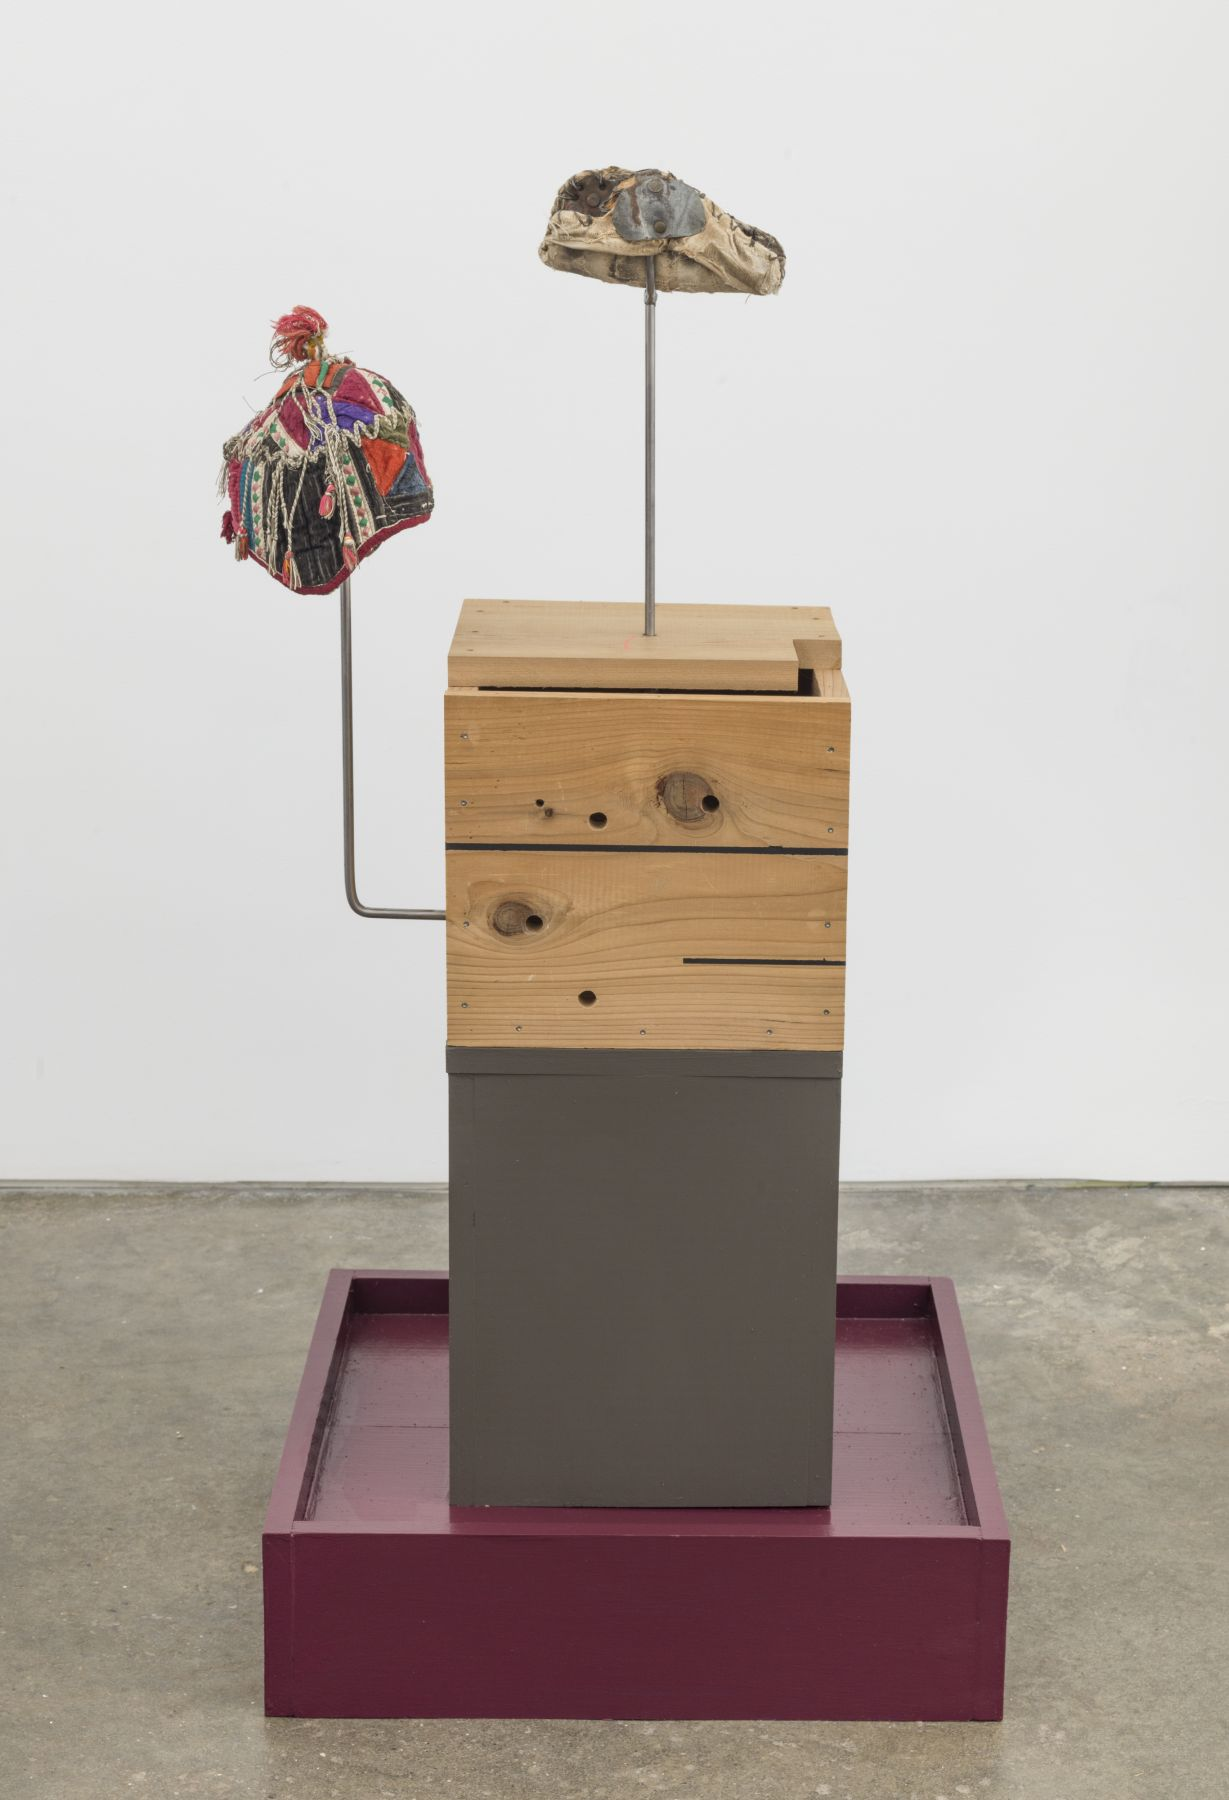 Untitled, 2018, Chinese baby hat, metal welder glove, wooden bases